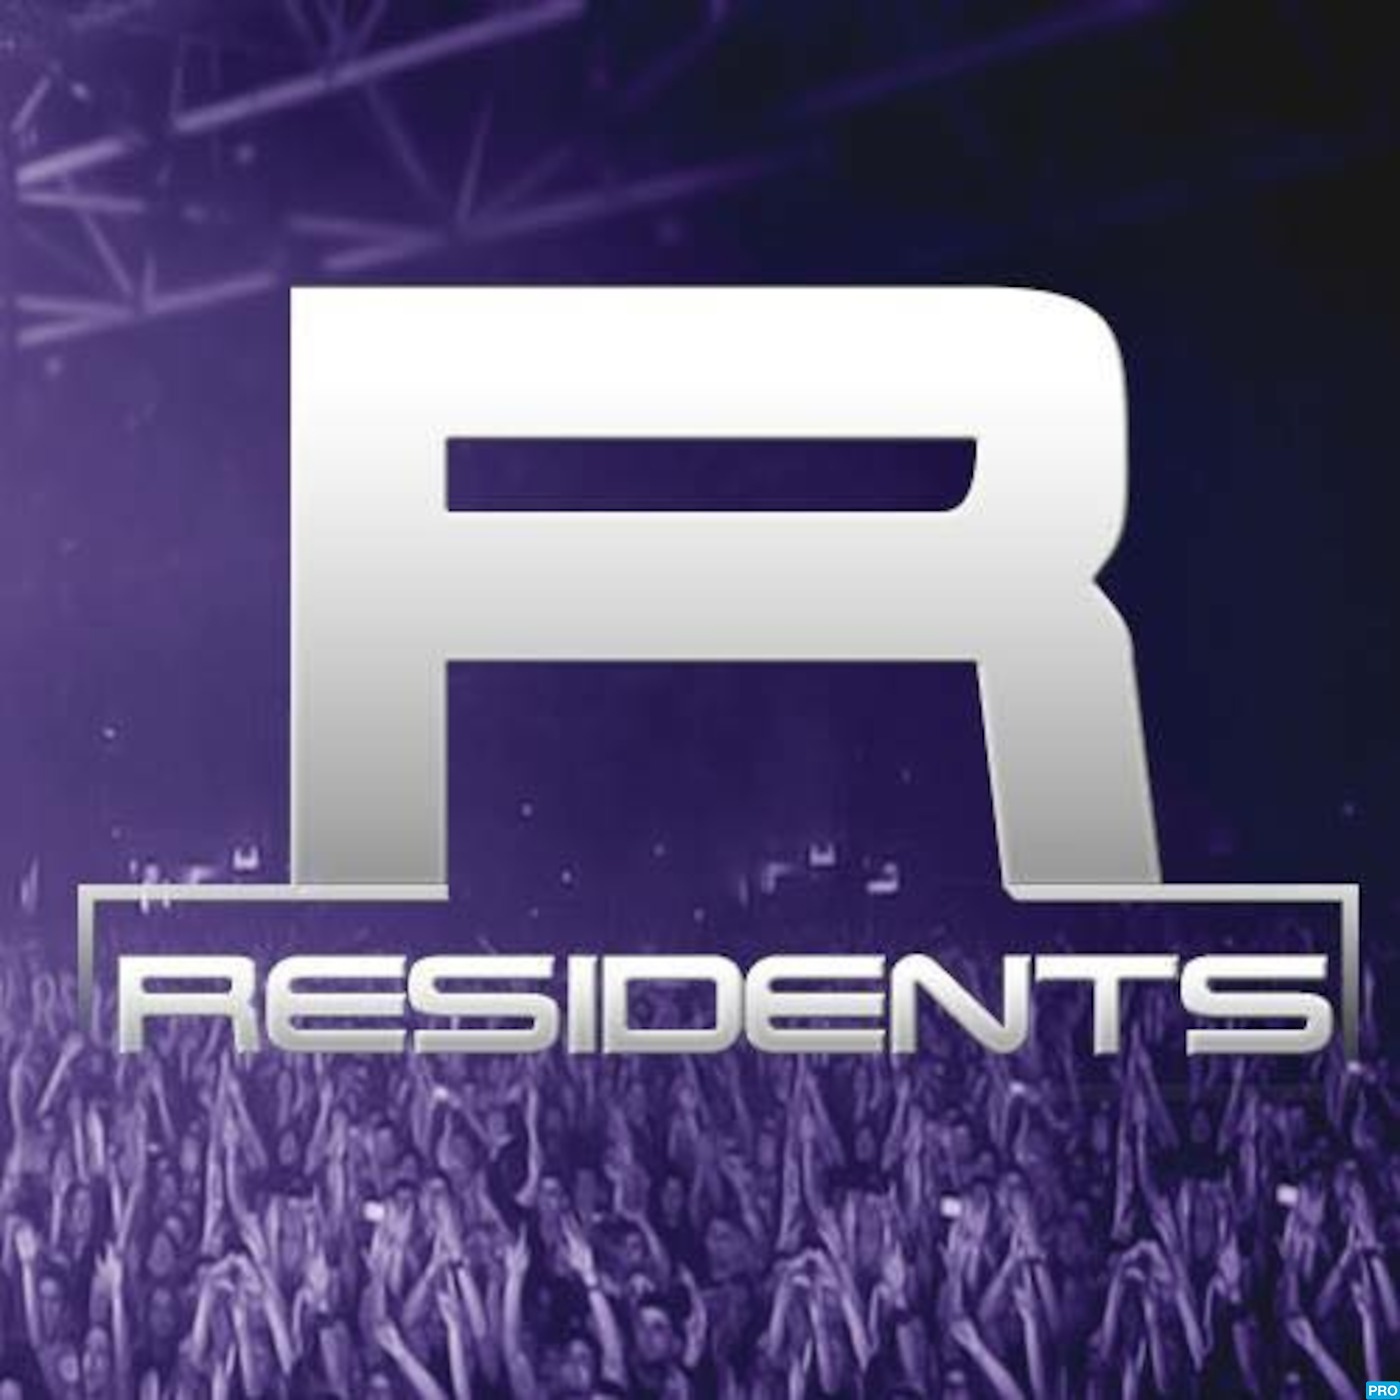 Residents Radio